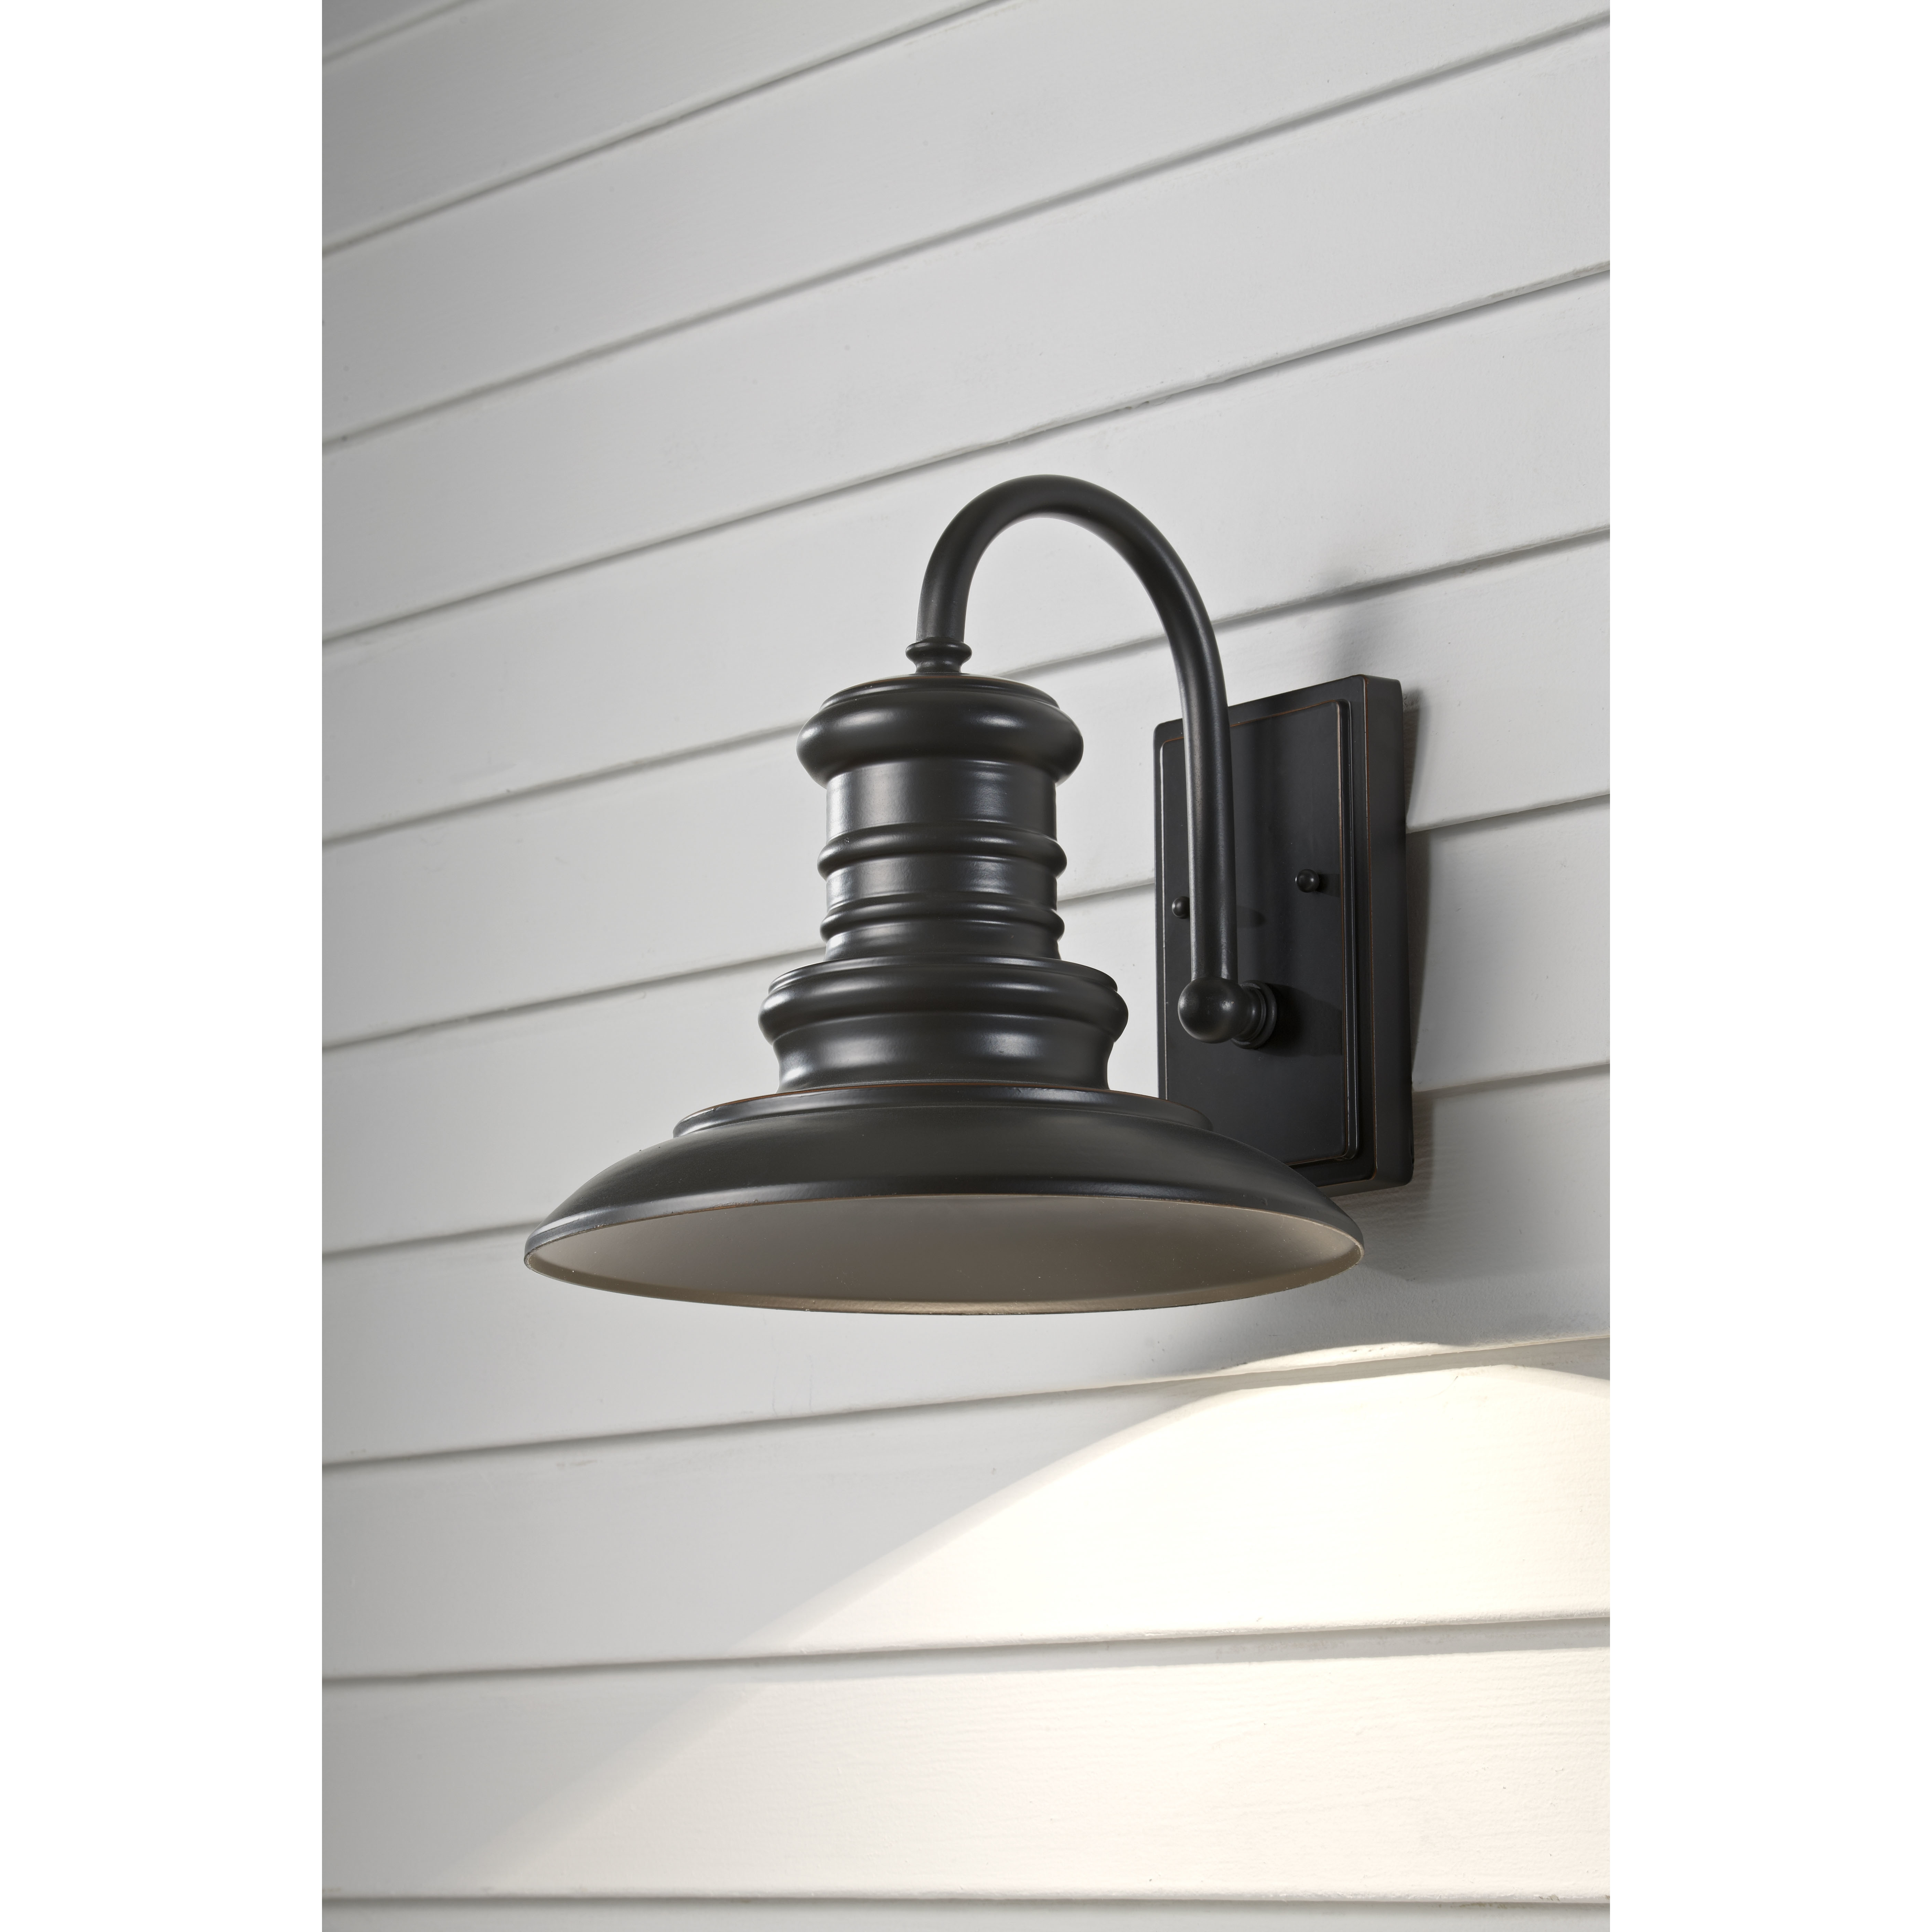 Inspiration about Modern Outdoor Wall Lighting Allmodern Redding Station 1 Light Within Contemporary Rustic Outdoor Lighting At Wayfair (#8 of 15)